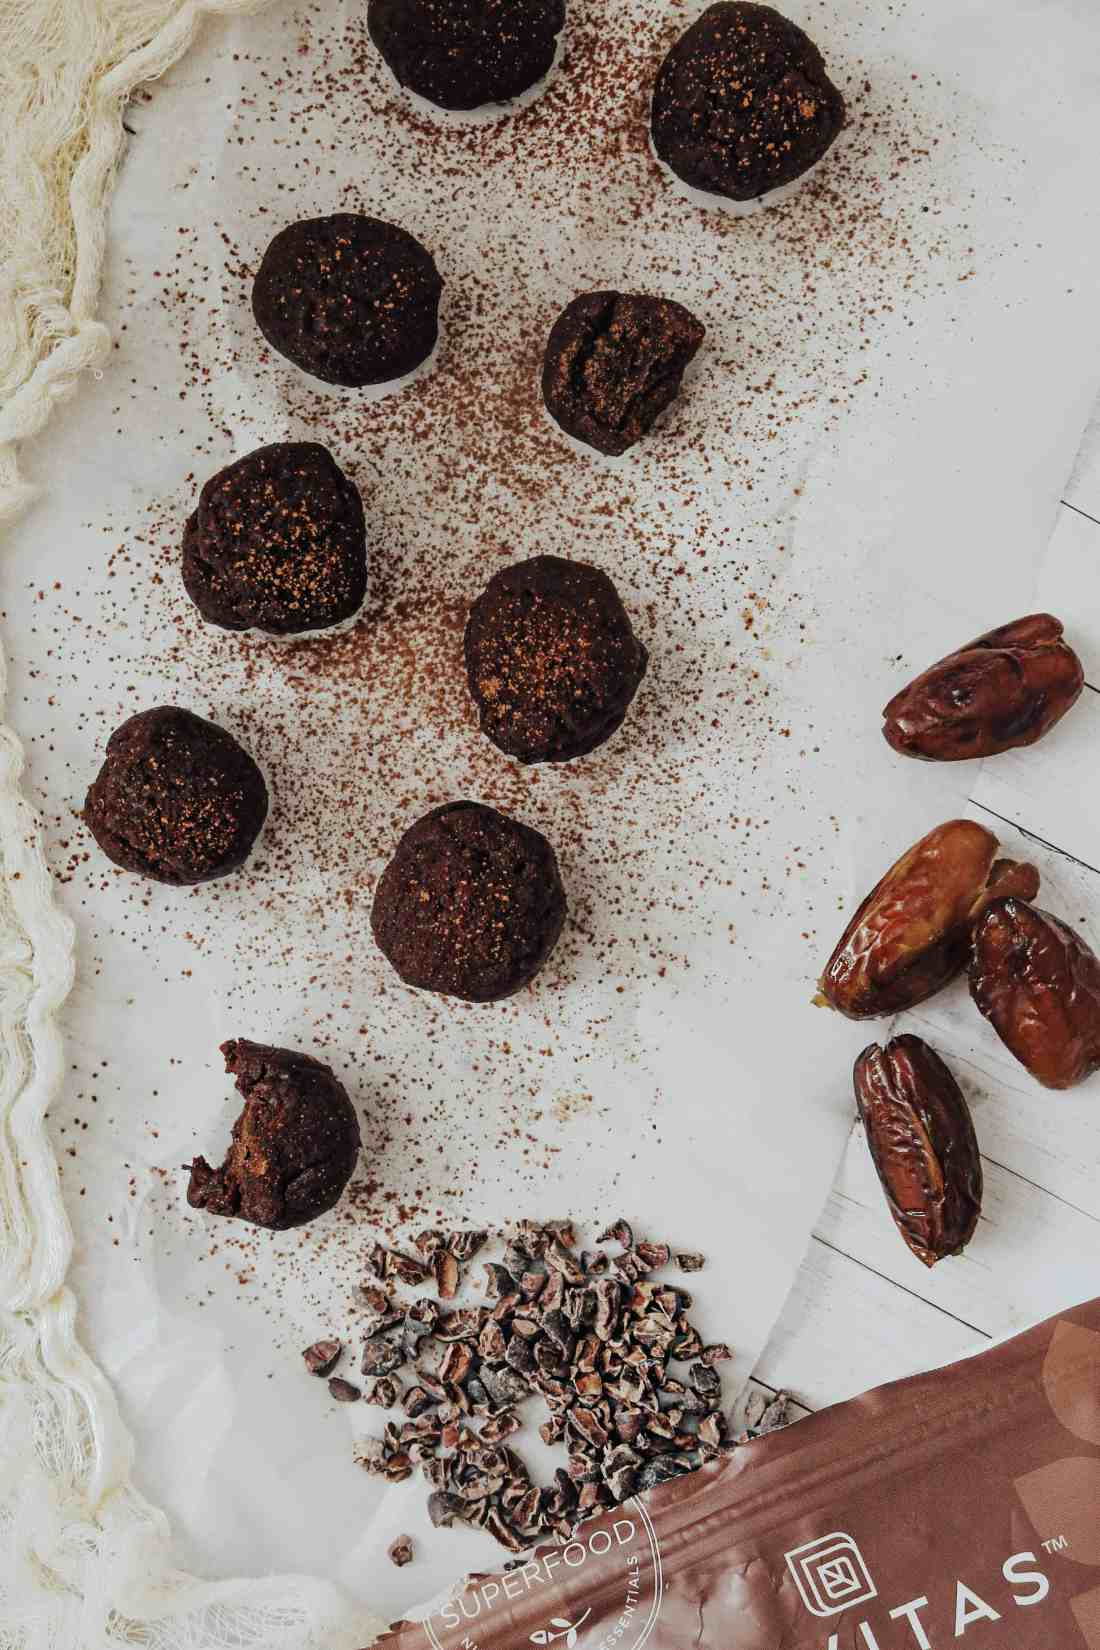 These energy boosting, mood balancing, Raw Cacao Truffles made with maca powder, make for a perfect, healthy, vegan dessert or mid-day snack!